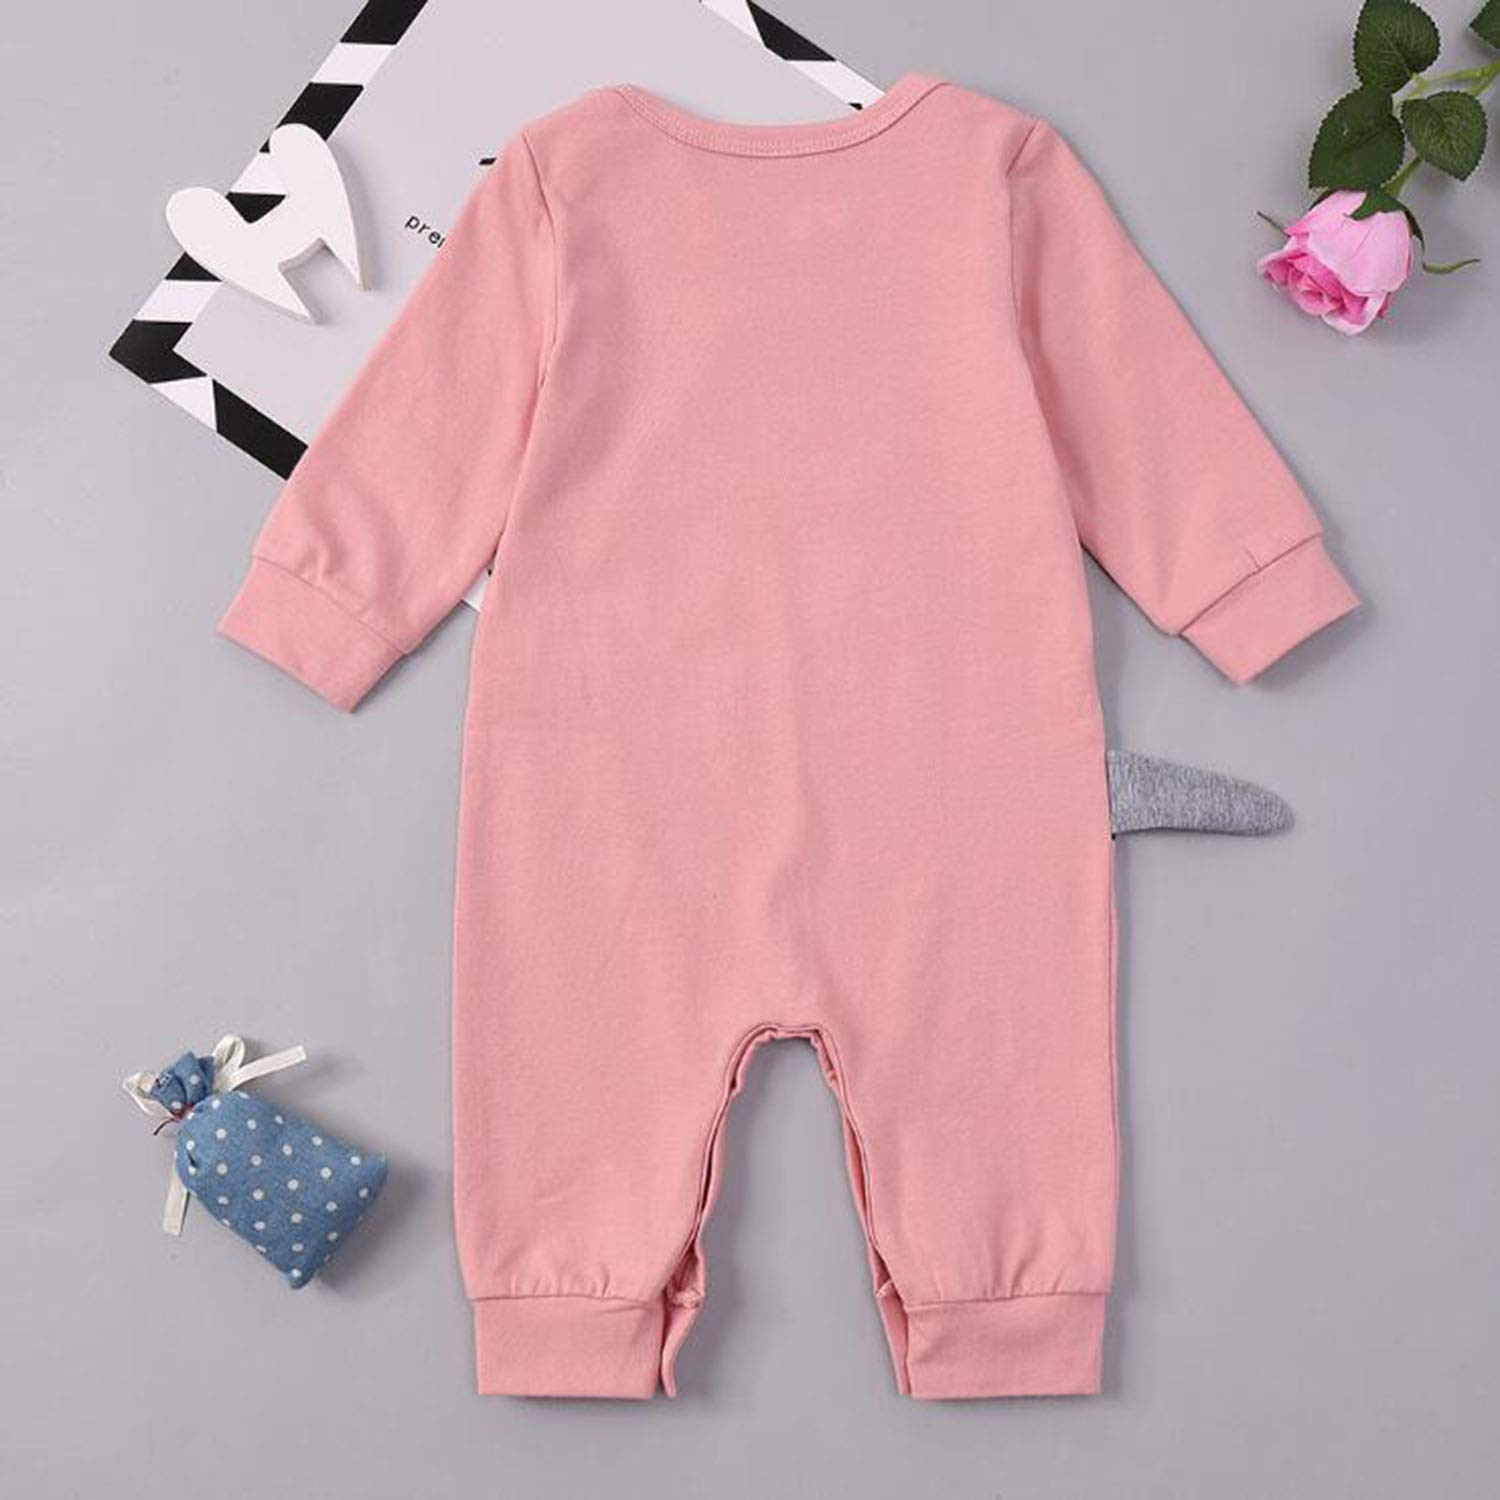 FIZUOXVE Baby Boy Girl Adorable Dinosaur Long Sleeve Jumpsuit Romper Cotton Outfit Clothes